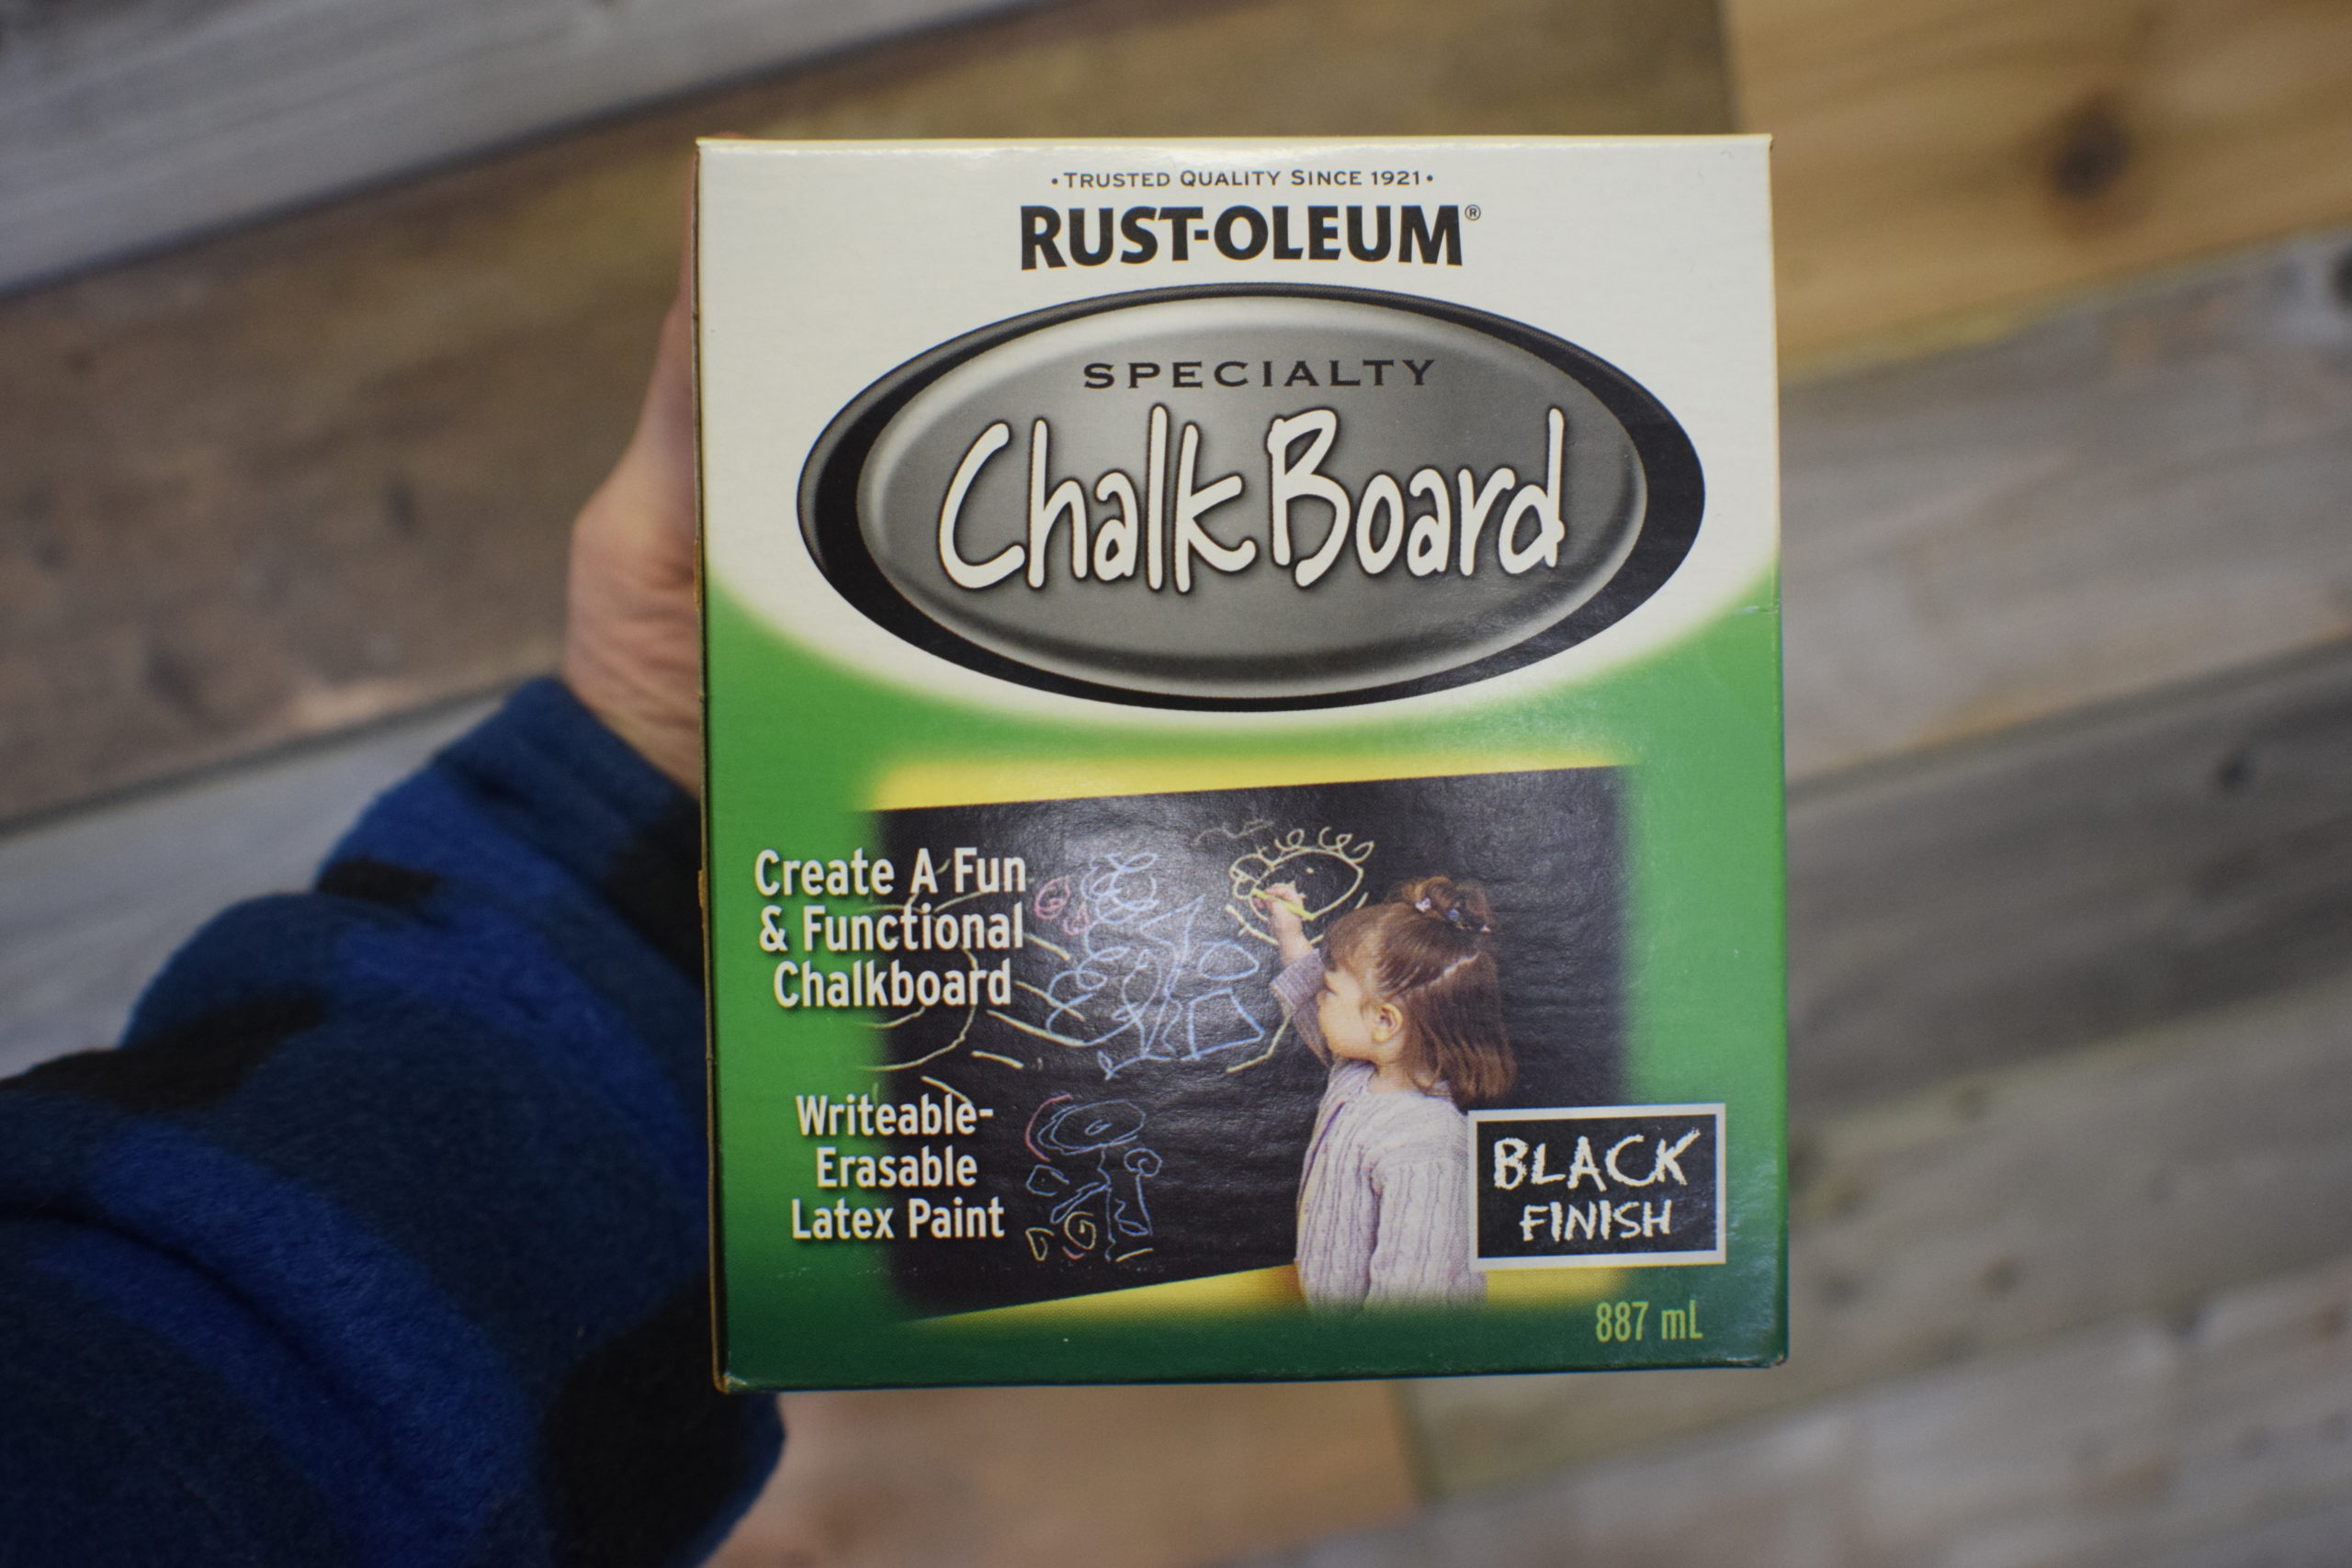 Box containing Rustoleum specialty Chalk Board paint in hand